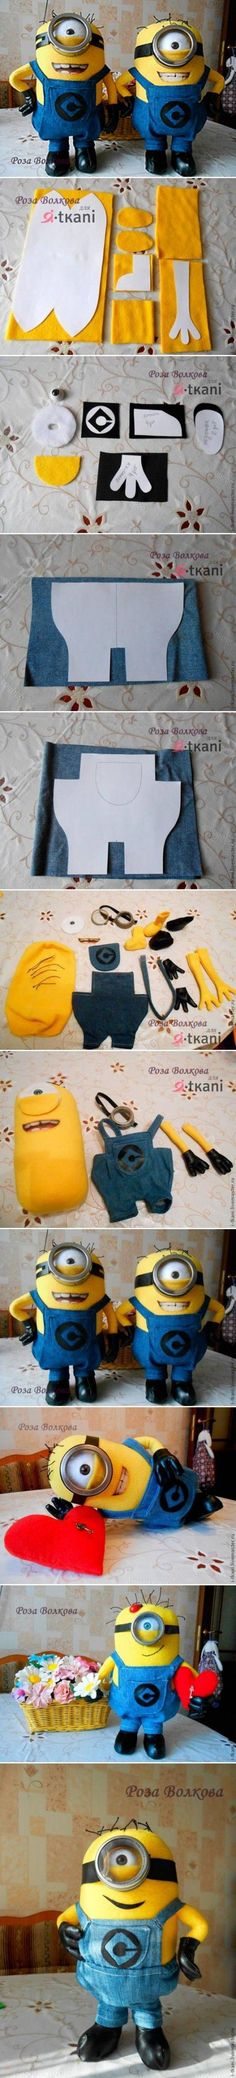 How to make Minion toy Doll step by step DIY tutorial instructions | How To Instructions: